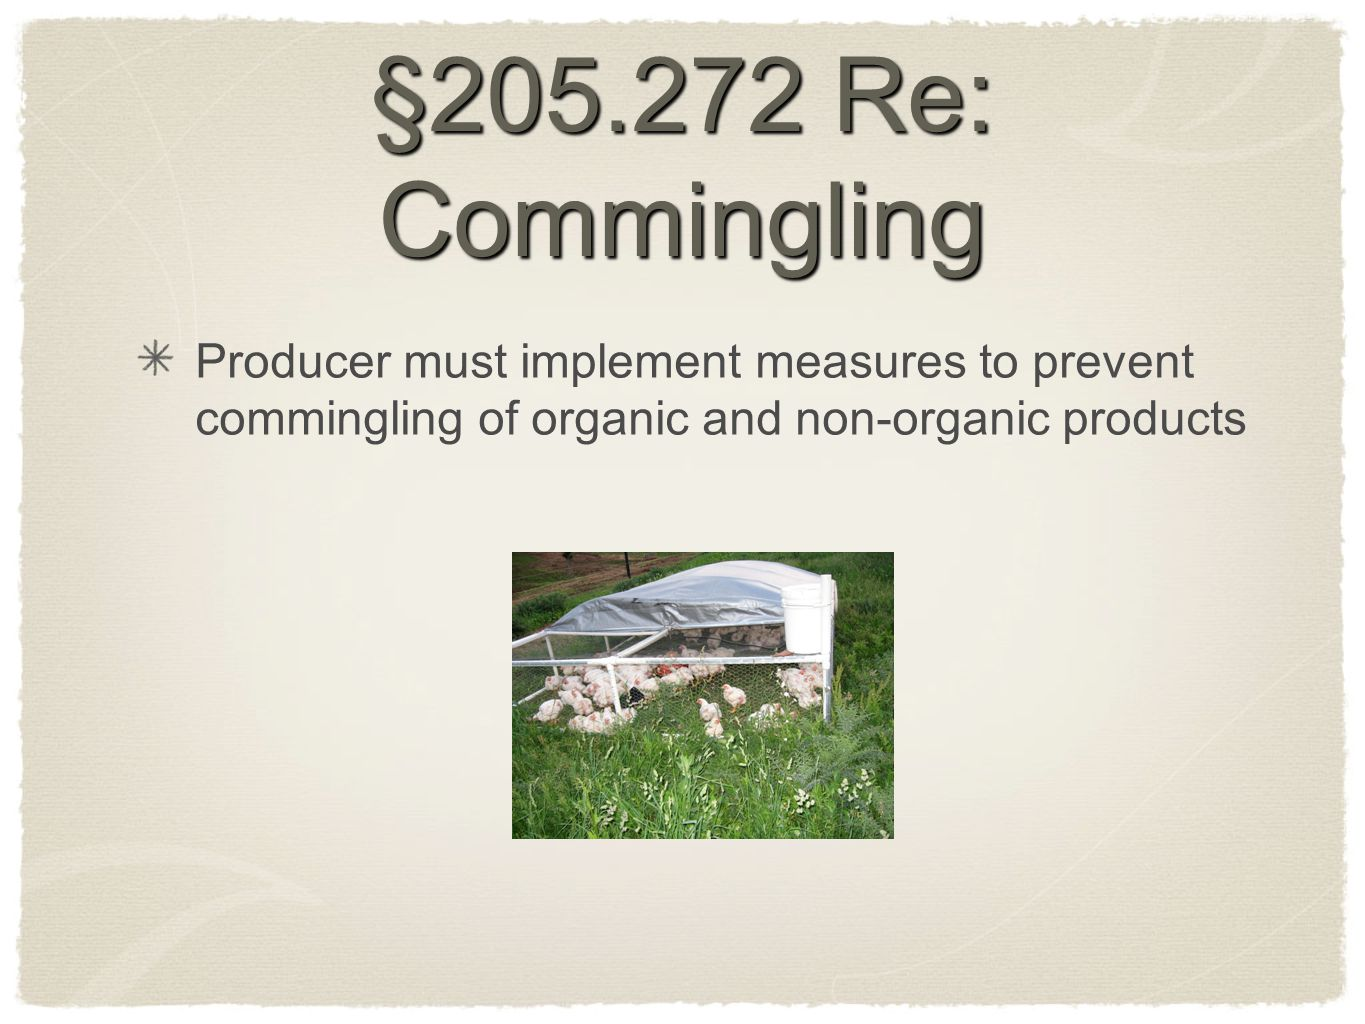 §205.272 Re: Commingling Producer must implement measures to prevent commingling of organic and non-organic products